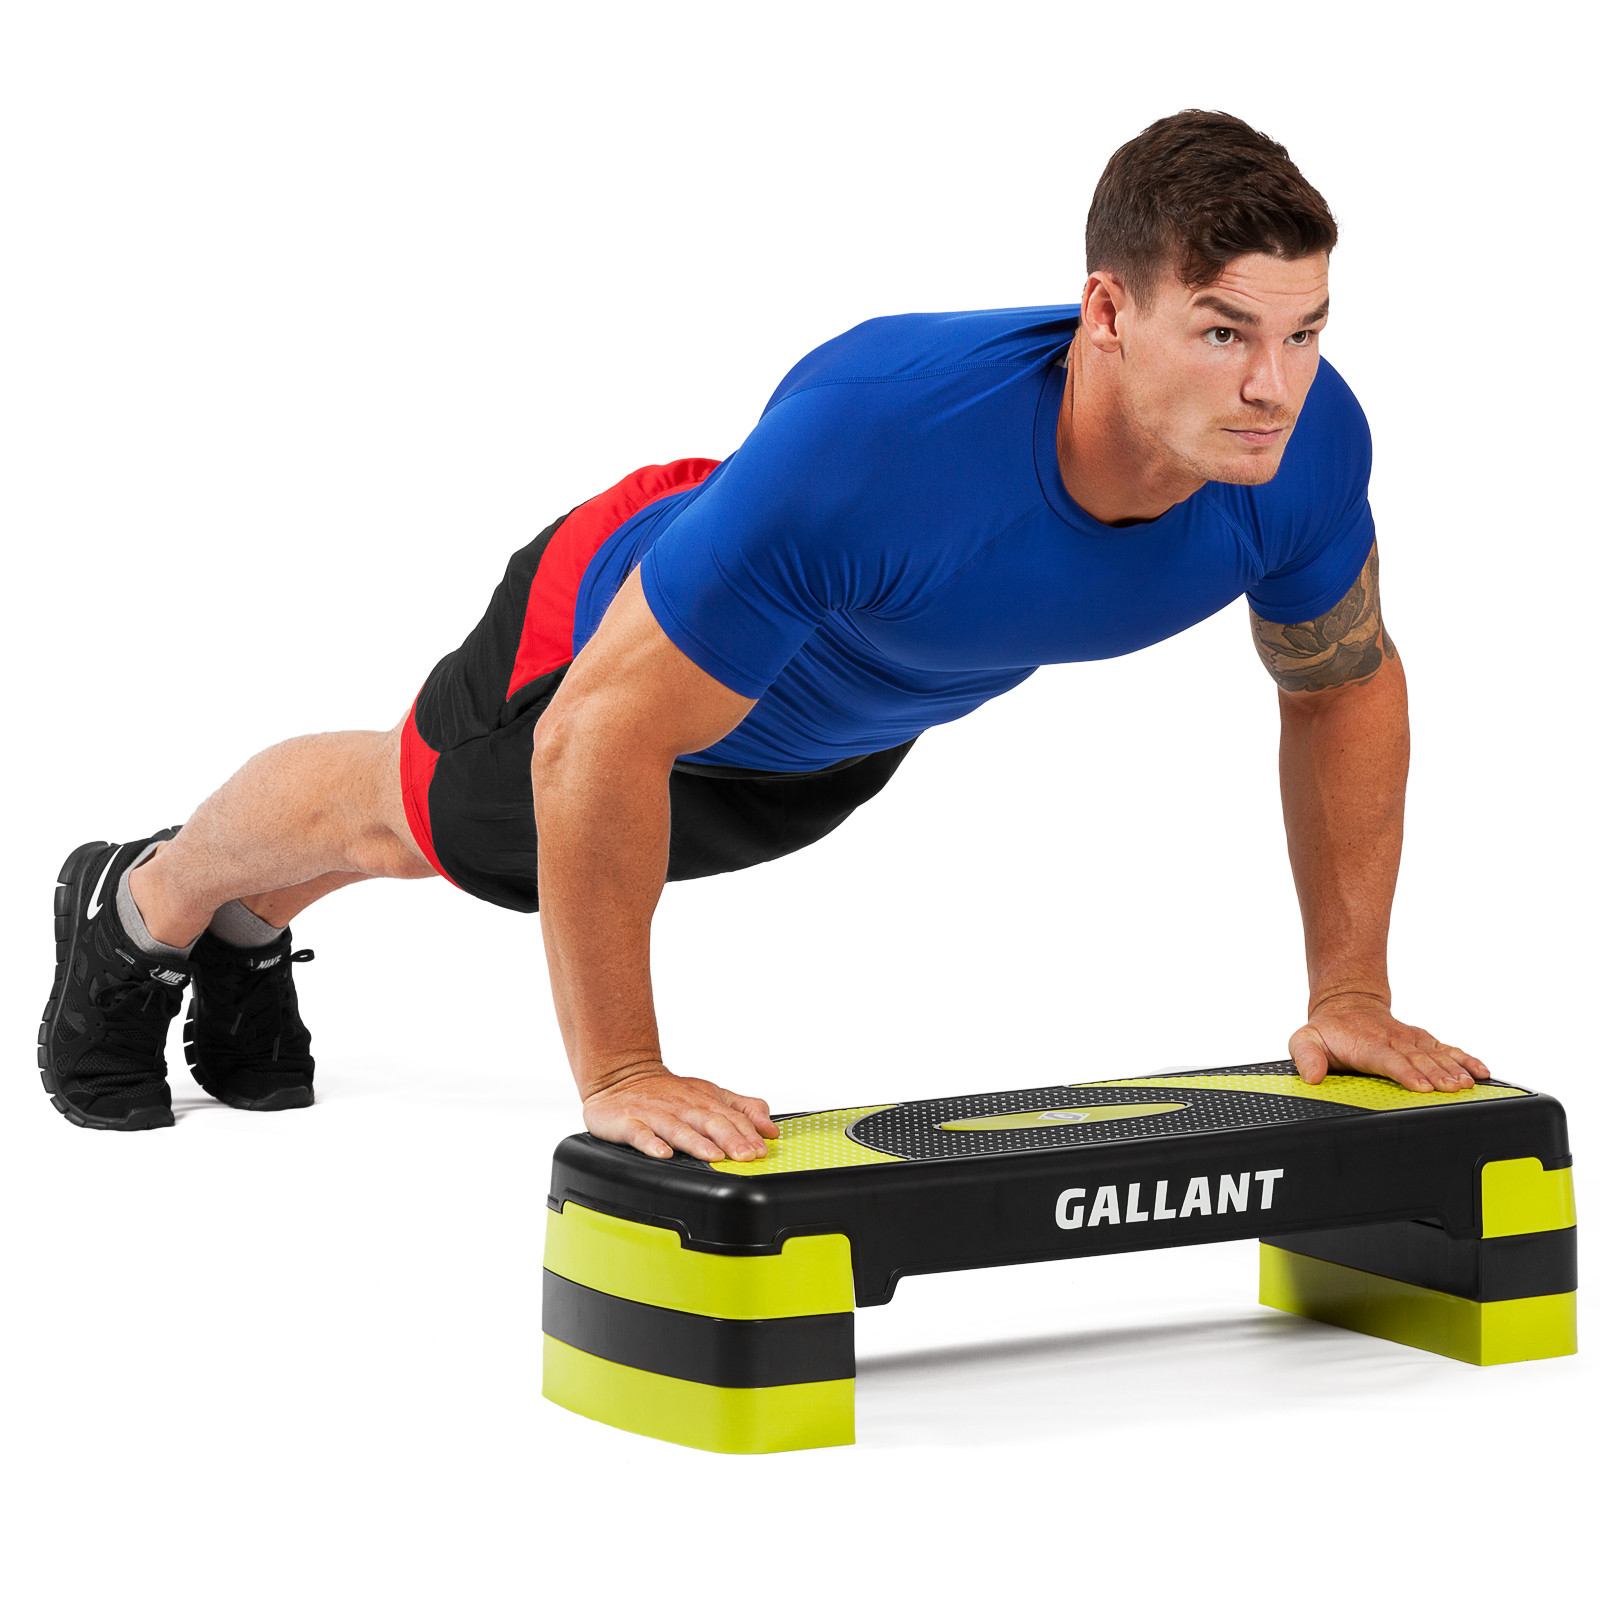 Home Exercise Equipment Stepper: Gallant 3 X Adjustable Aerobic Stepper Cardio Fitness Step